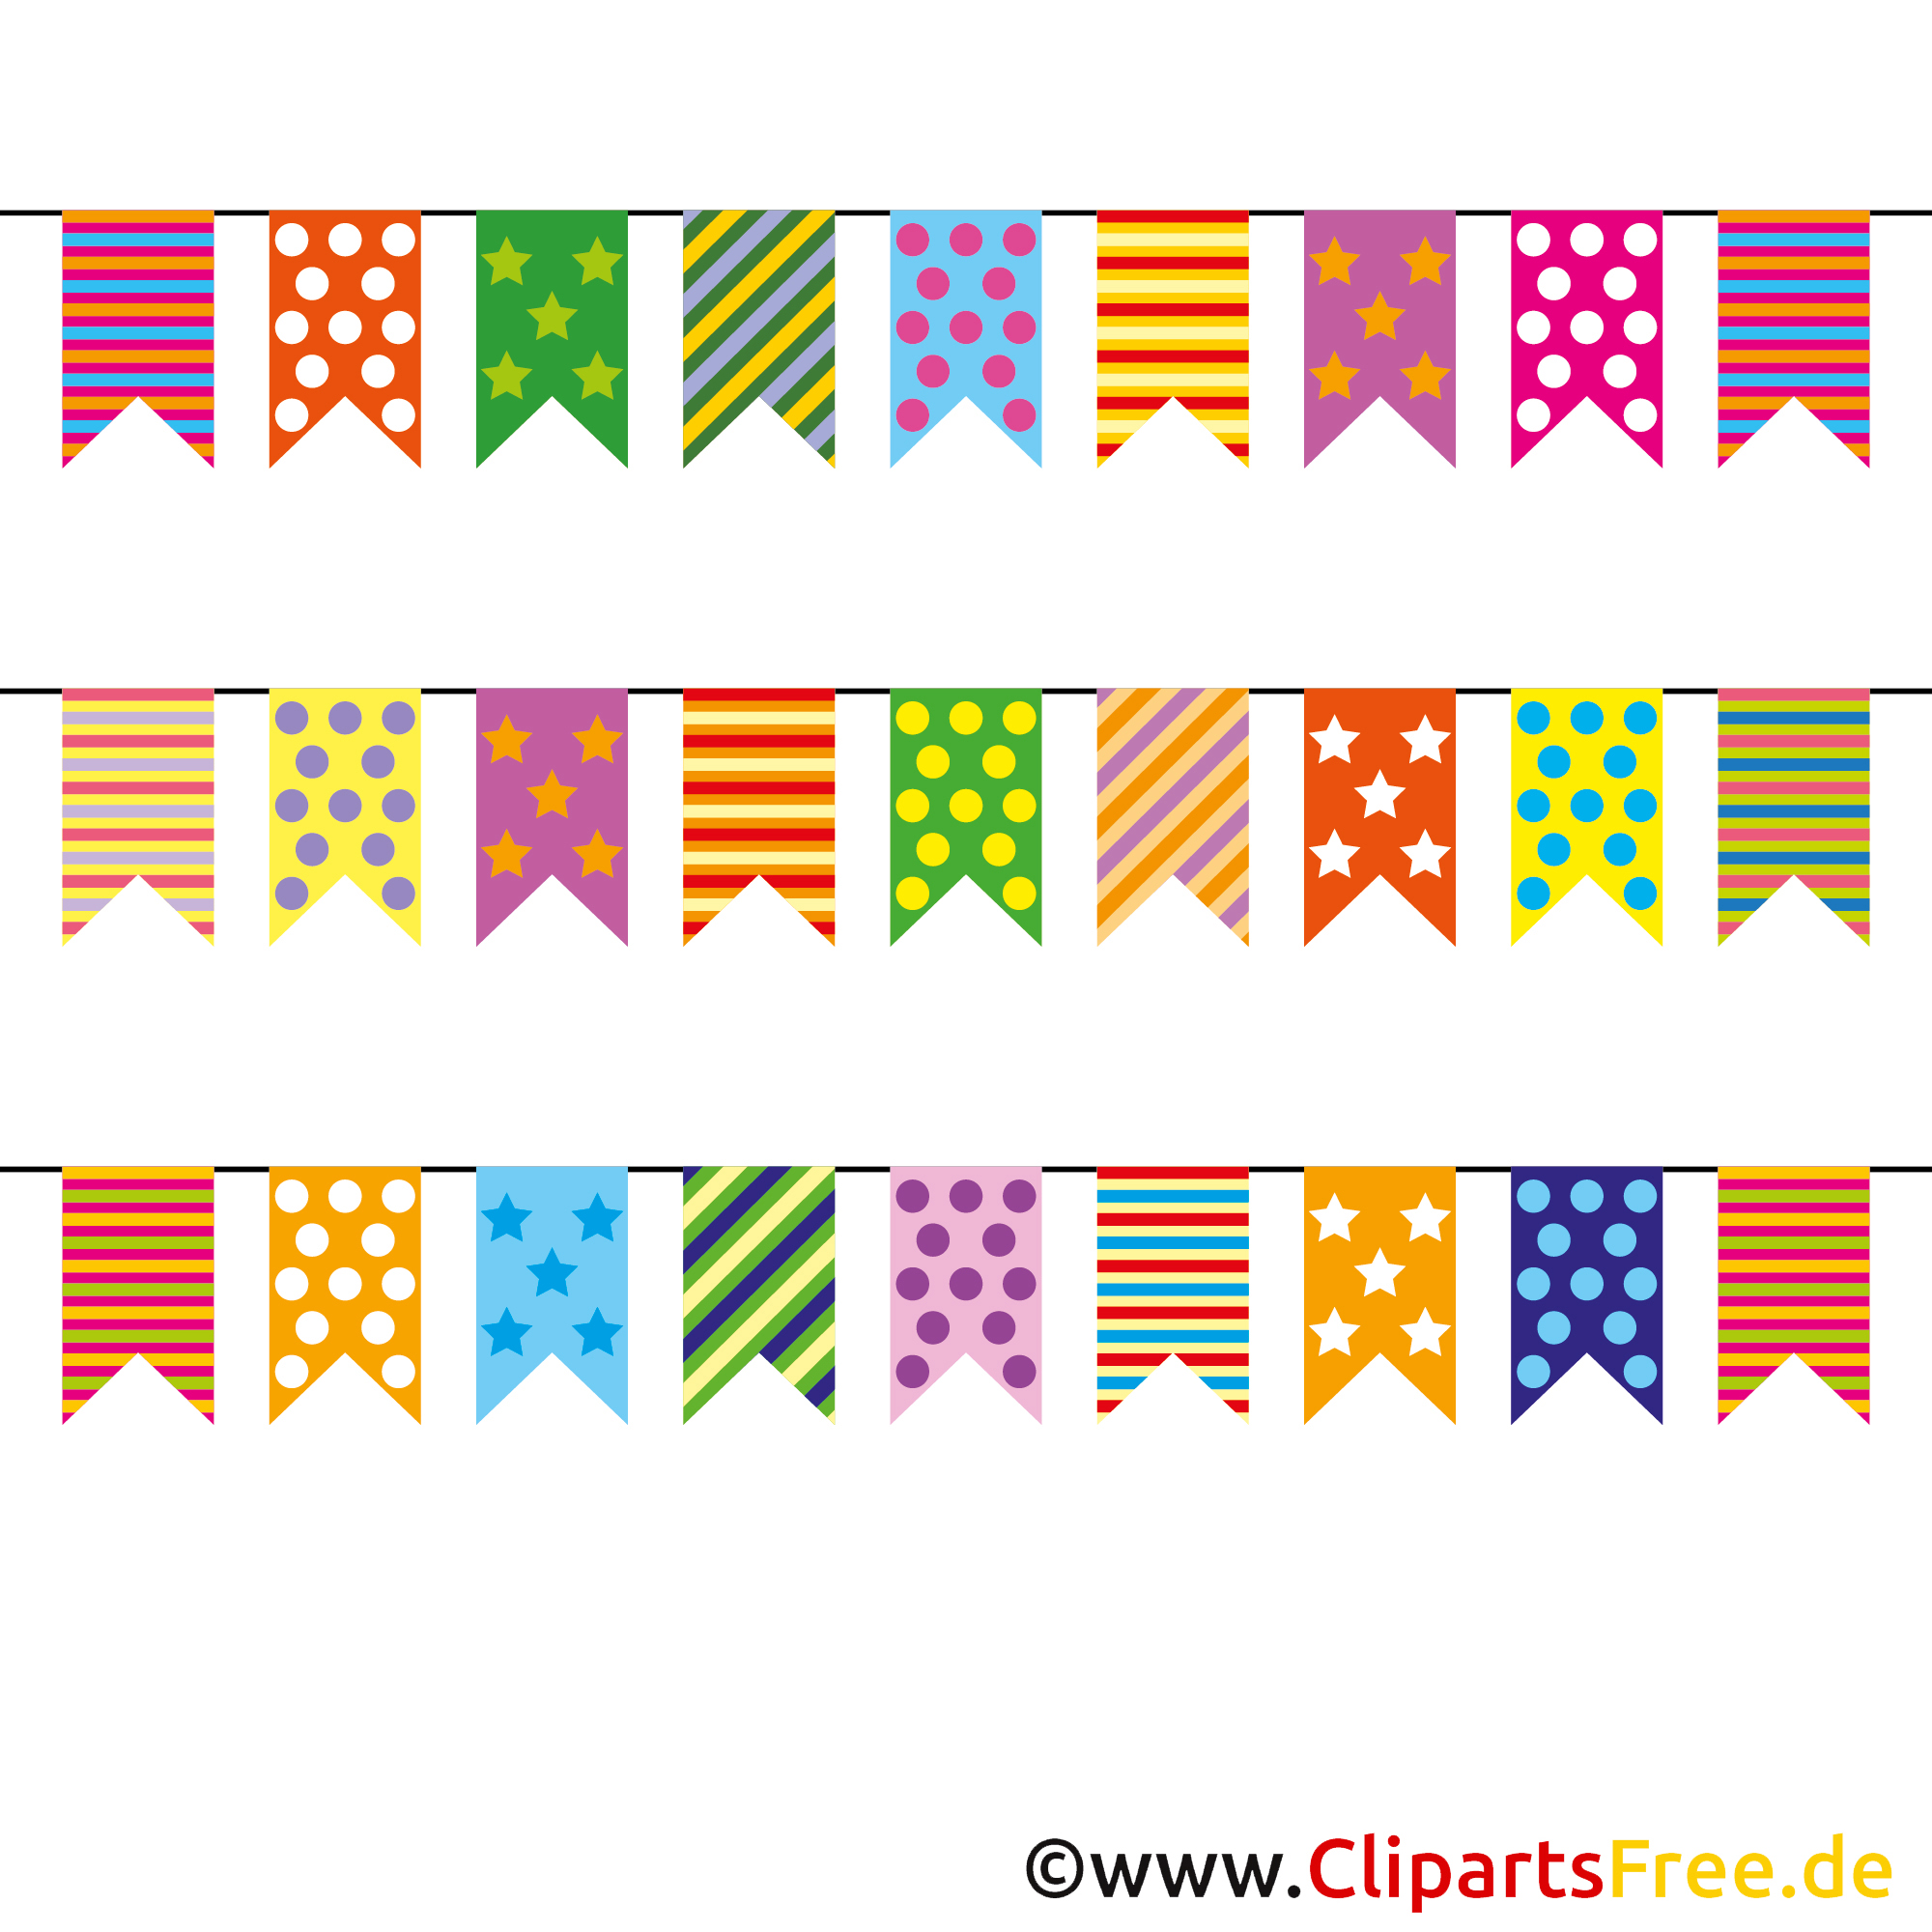 geburtstag clipart free happy birthday free clip art funny happy birthday free clip art funny